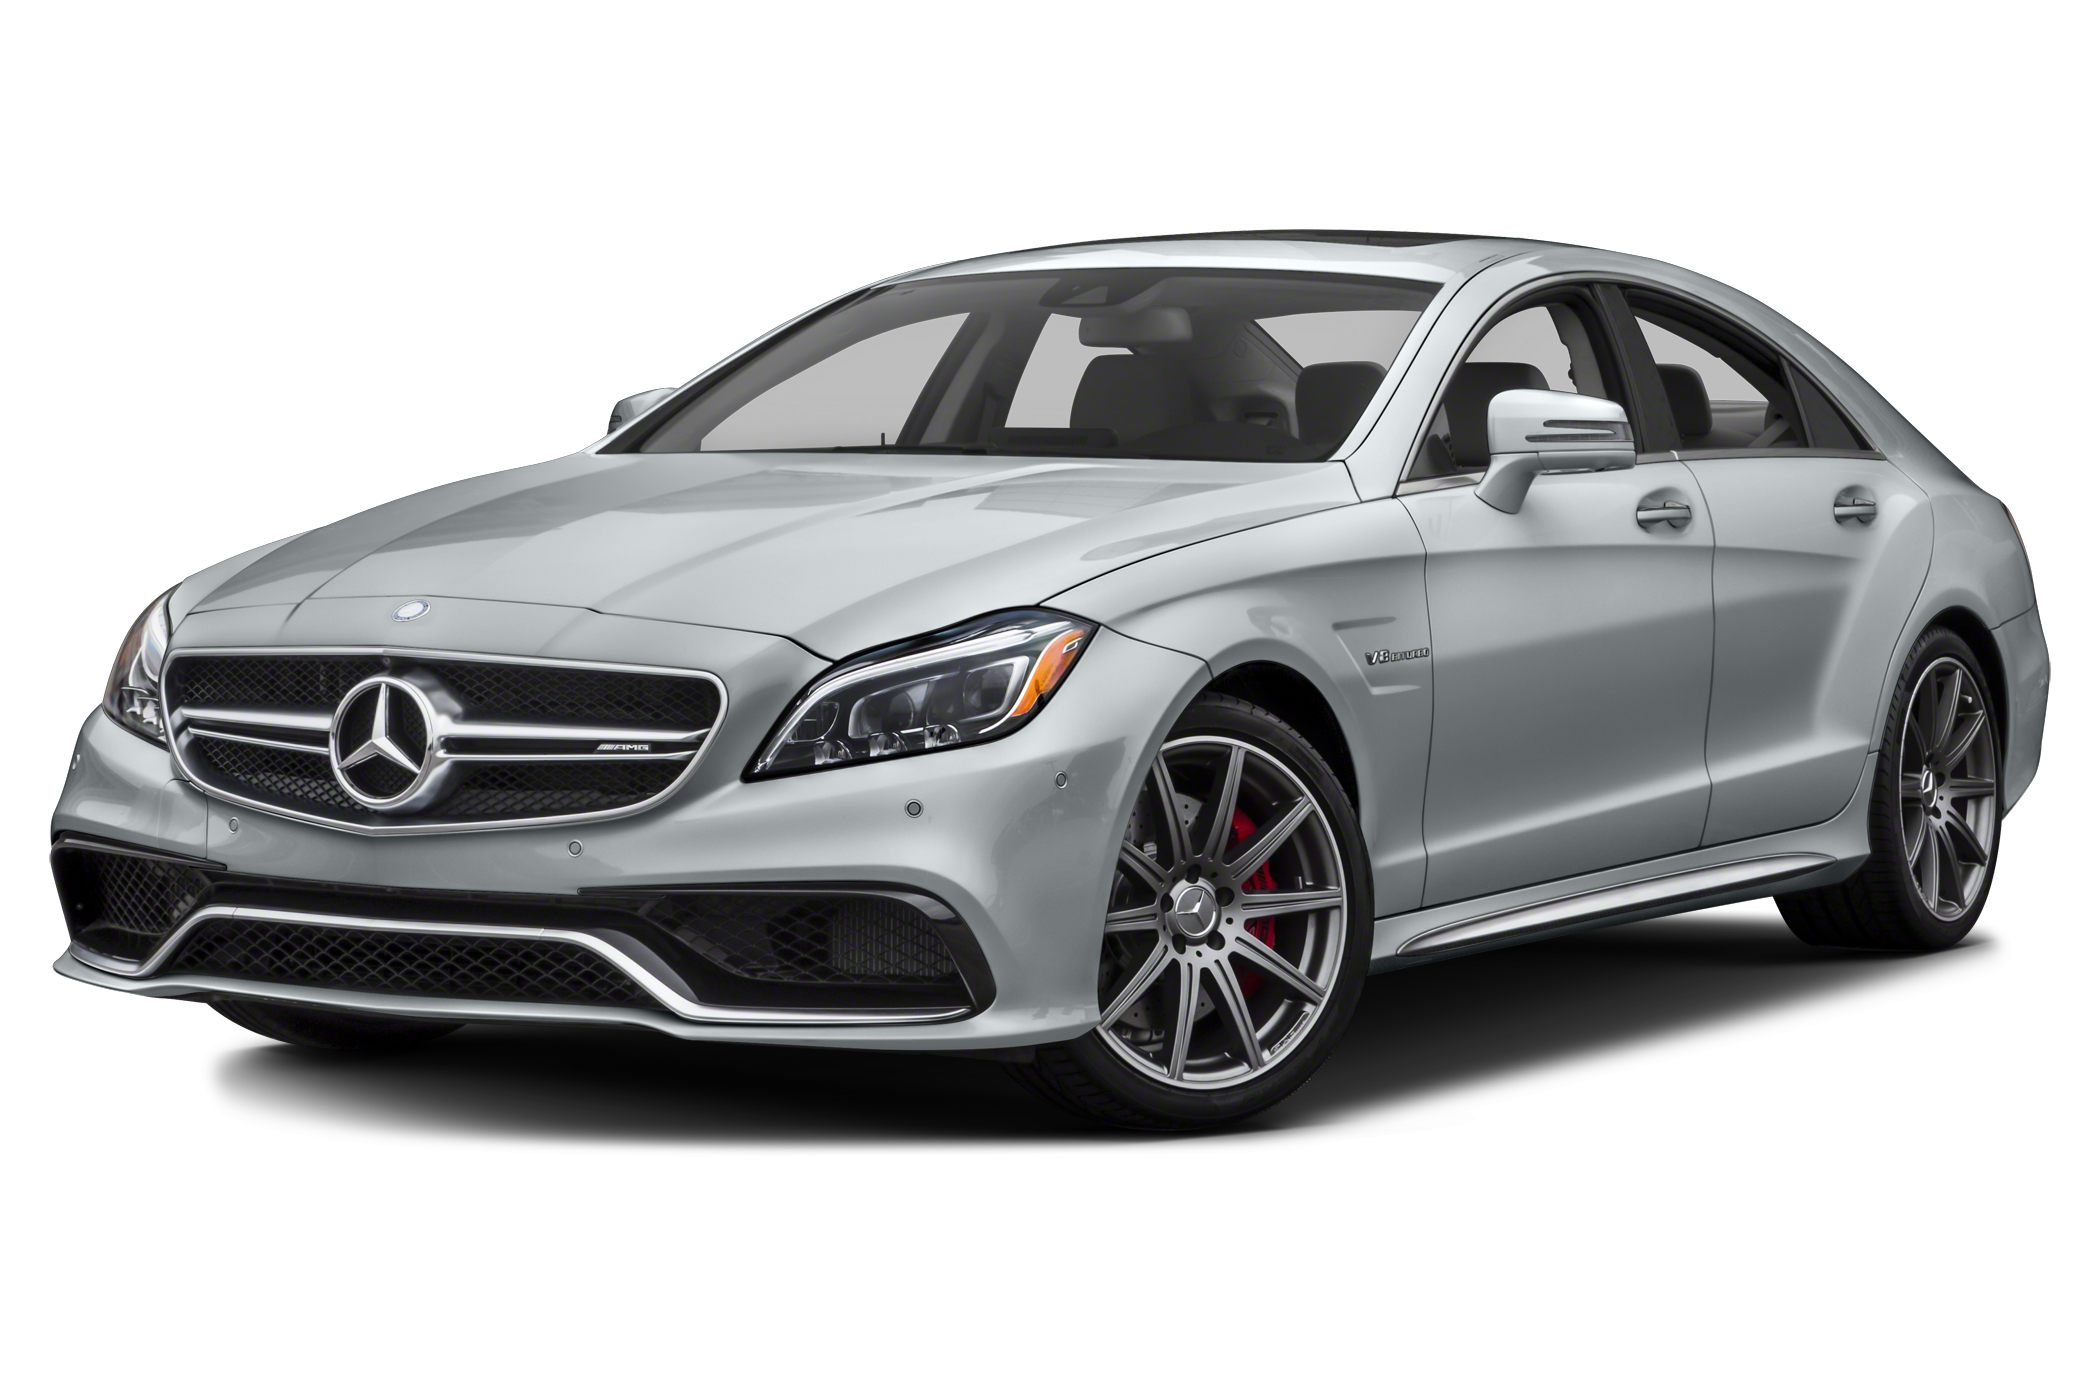 2015 Mercedes Benz CLS Class S Model CLS 63 AMG 4dr All wheel Drive